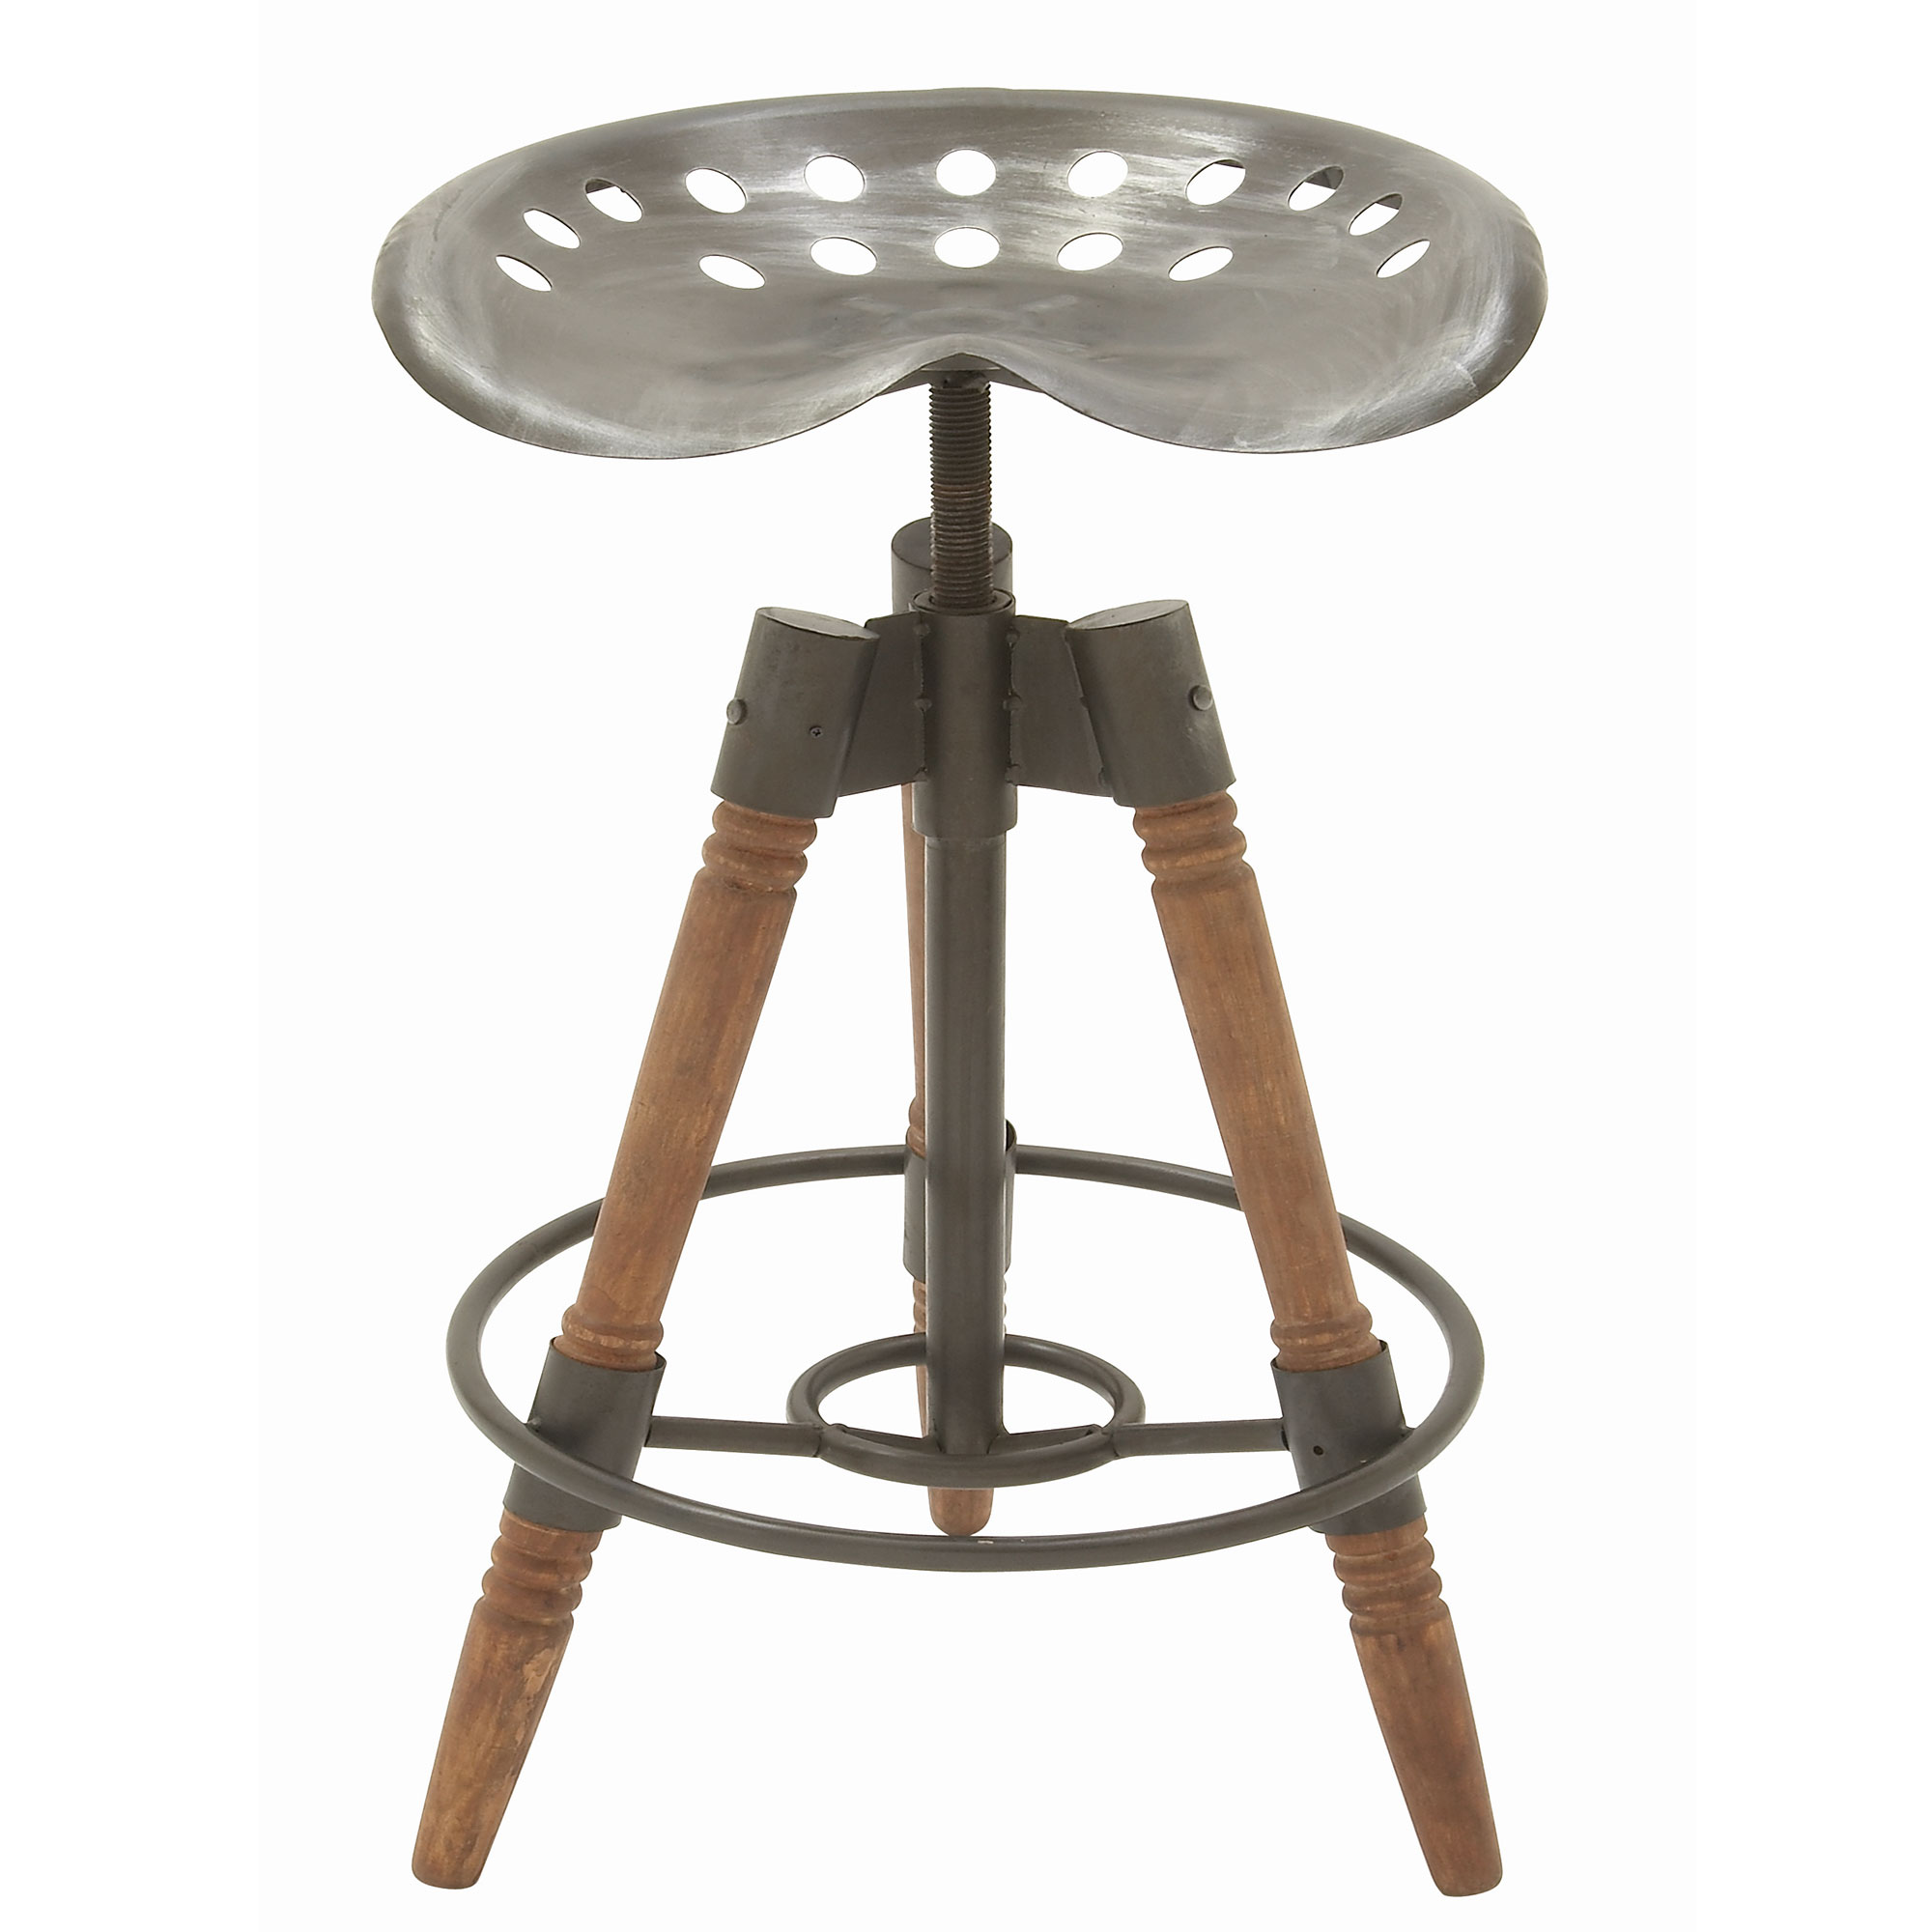 Deco 79 Rustic Farmhouse 3 Leg Tripod Metal Saddle Seat